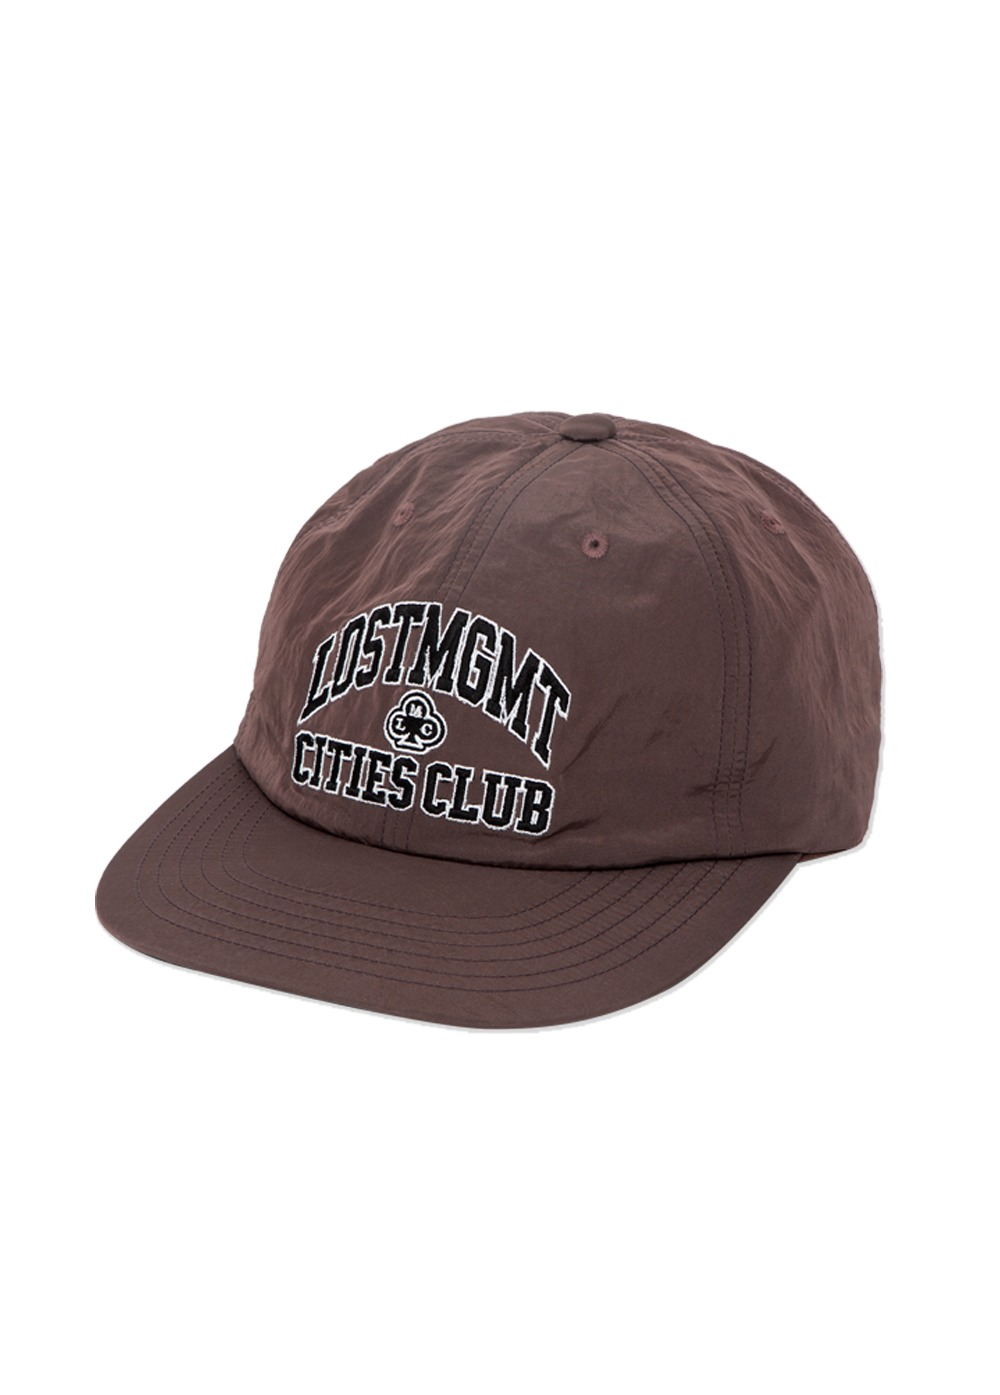 LMC NYLON CLUB ATHLETIC FLAT BILL CAP brown